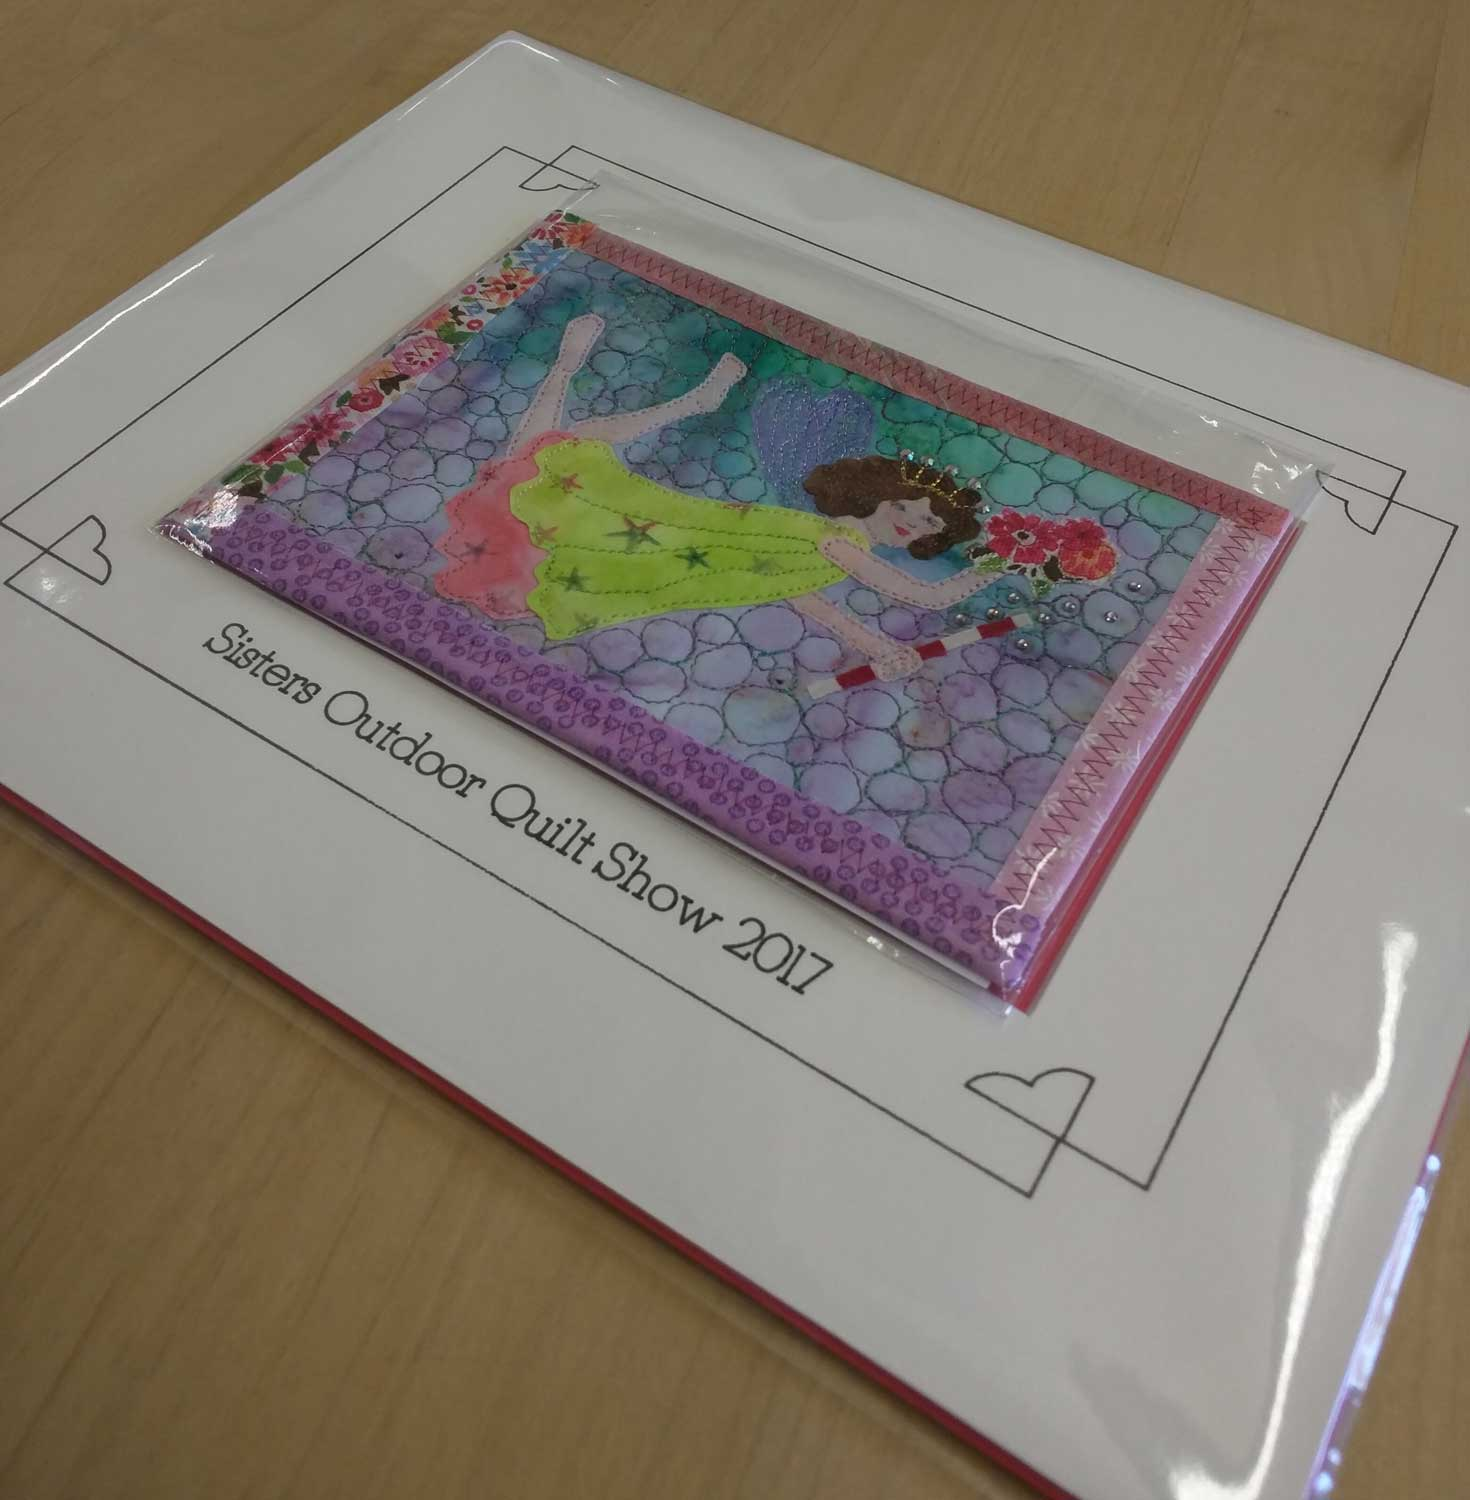 """A Very Limited amount of special mats are available. The special mat will frame your fabric post card or any 4"""" x 6"""" photograph. Great gift idea?"""